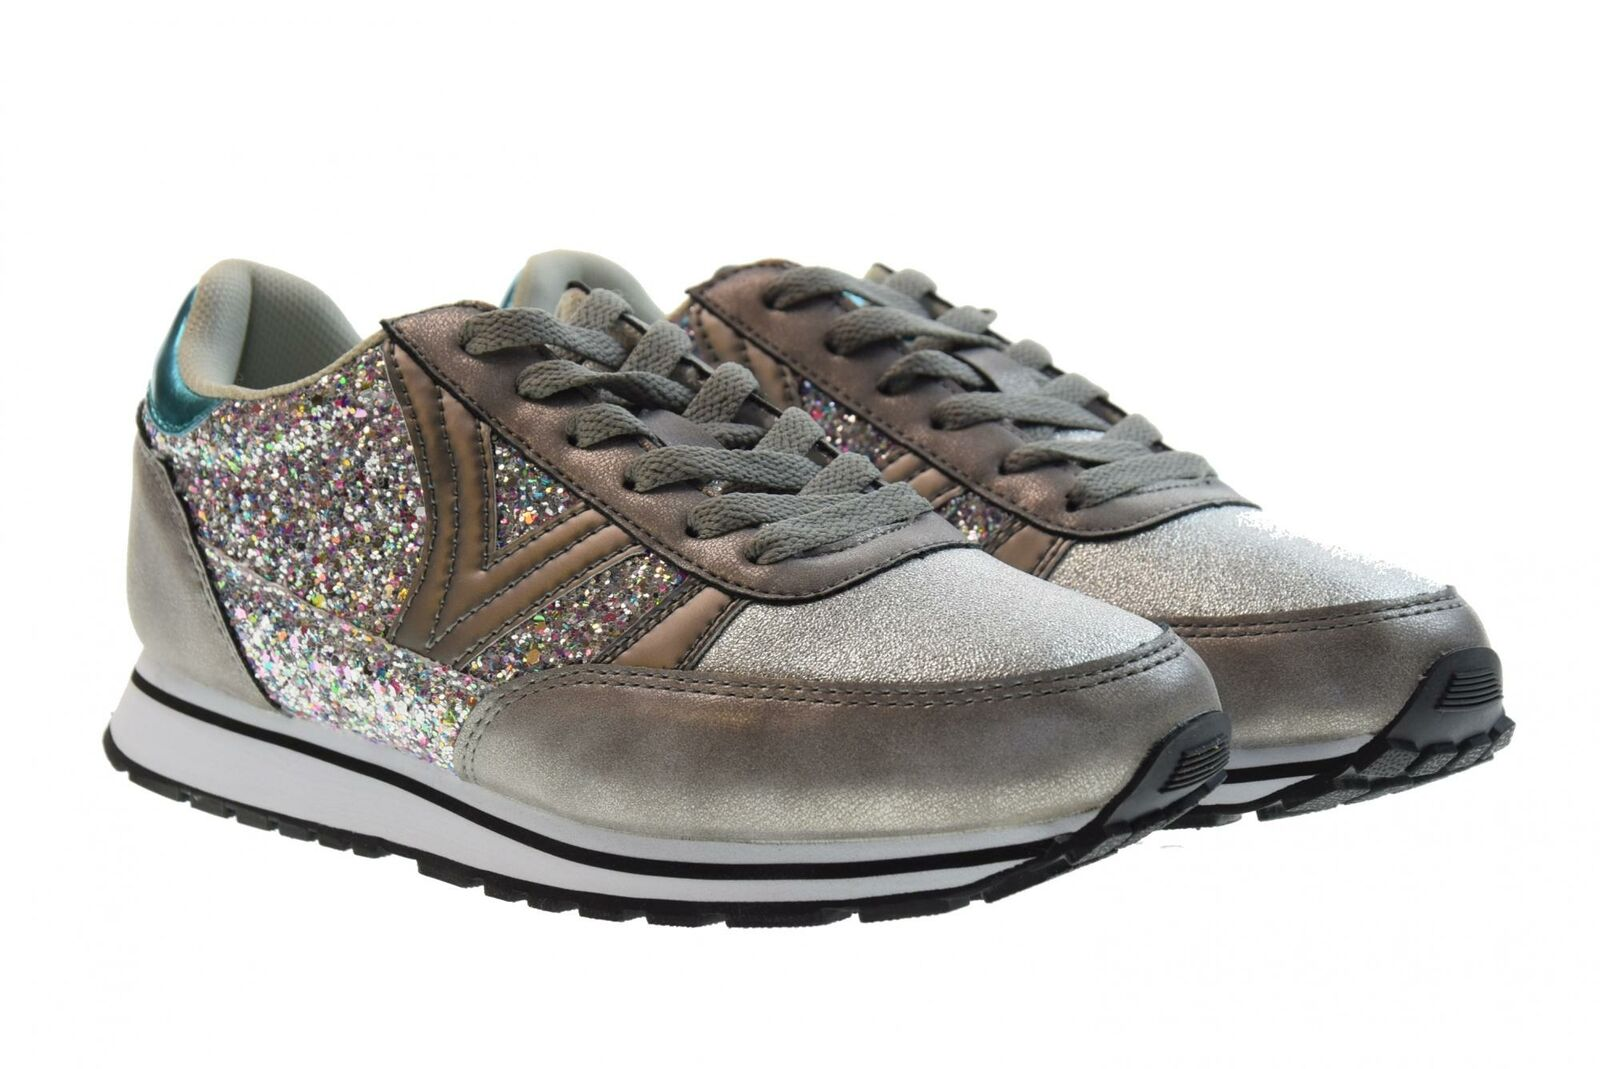 Victoria P19f shoes femme baskets 141113 SILVER